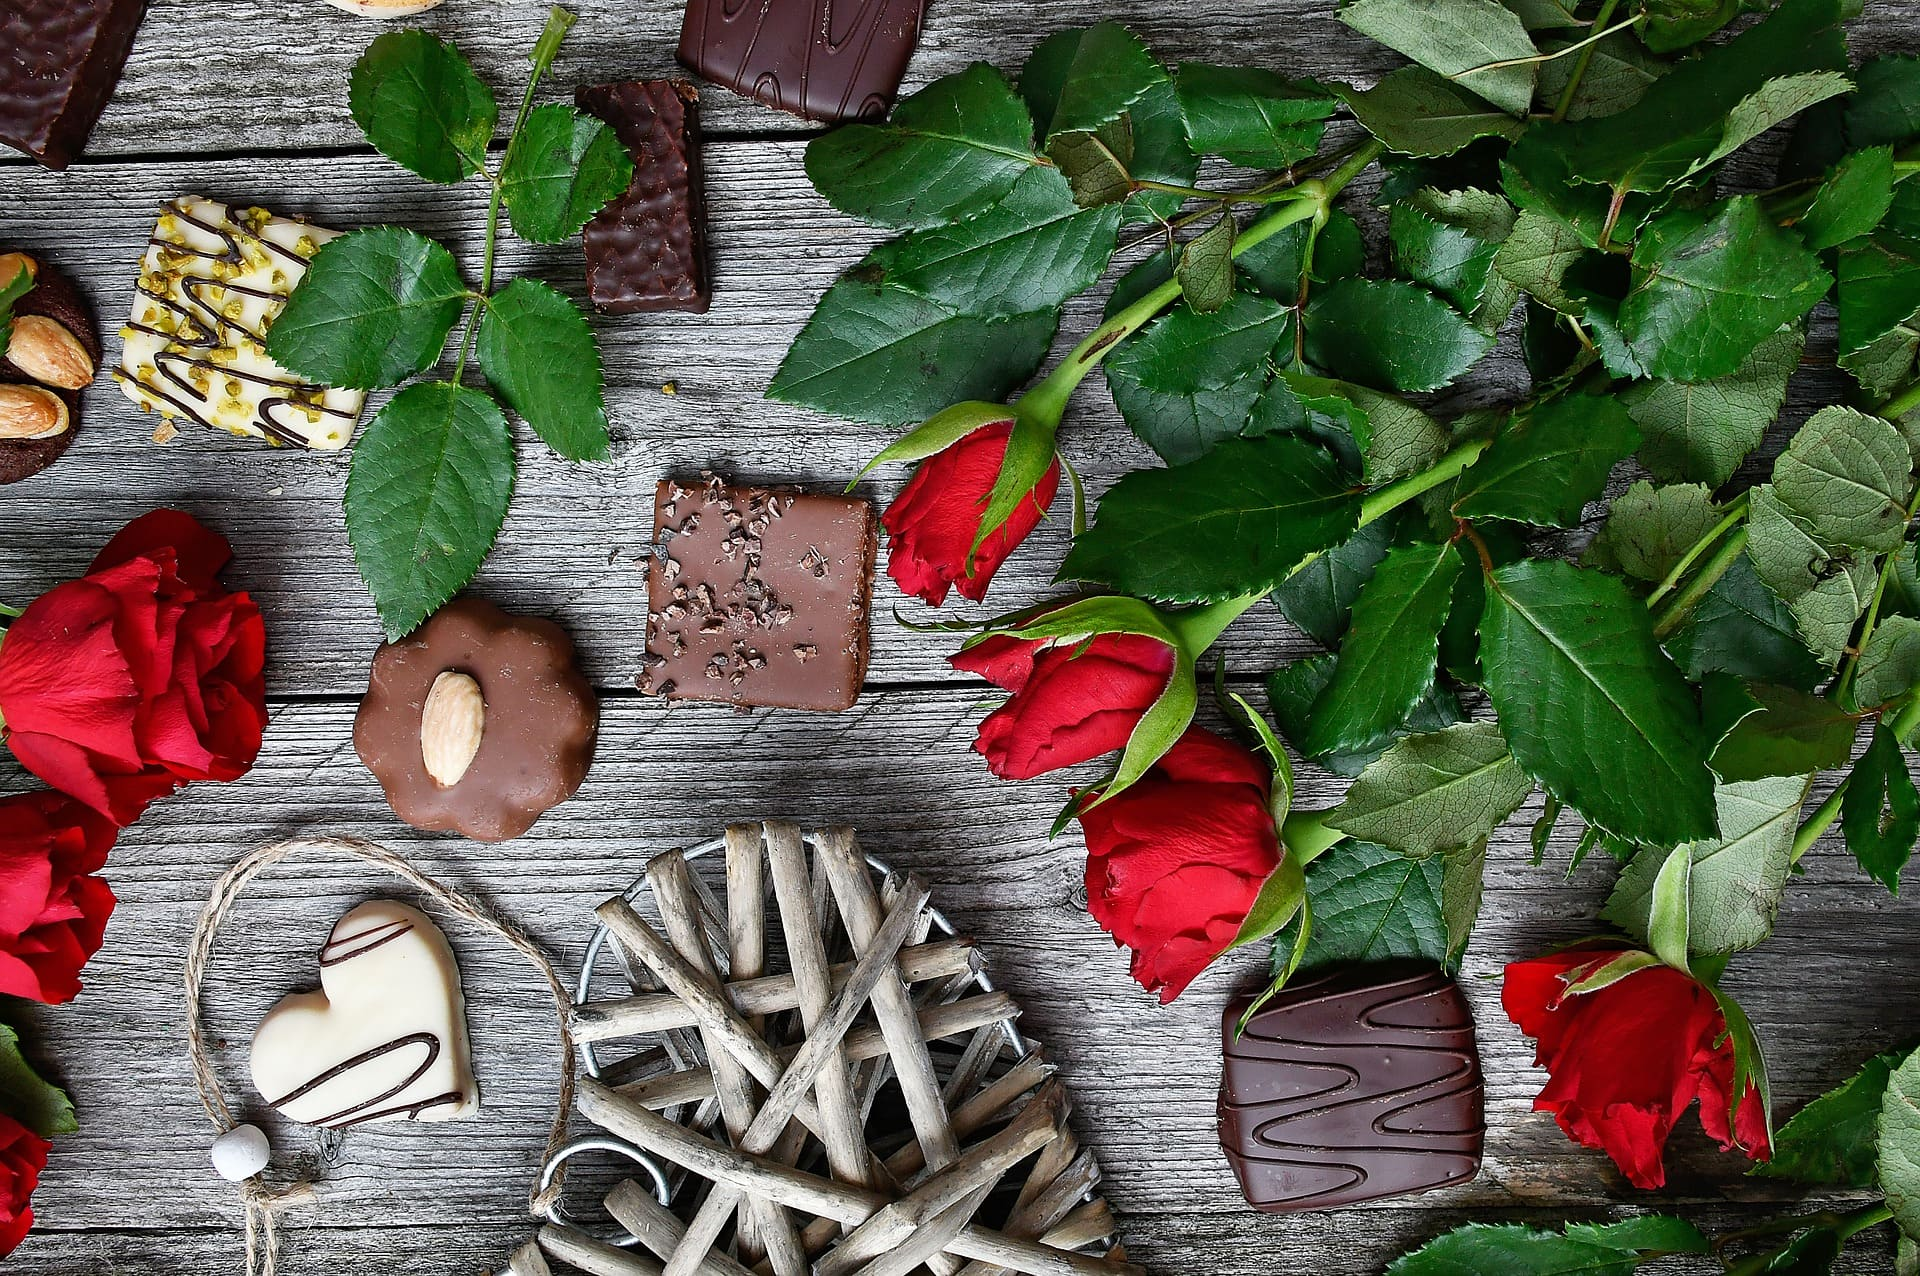 Flowers and sweet gift ideas